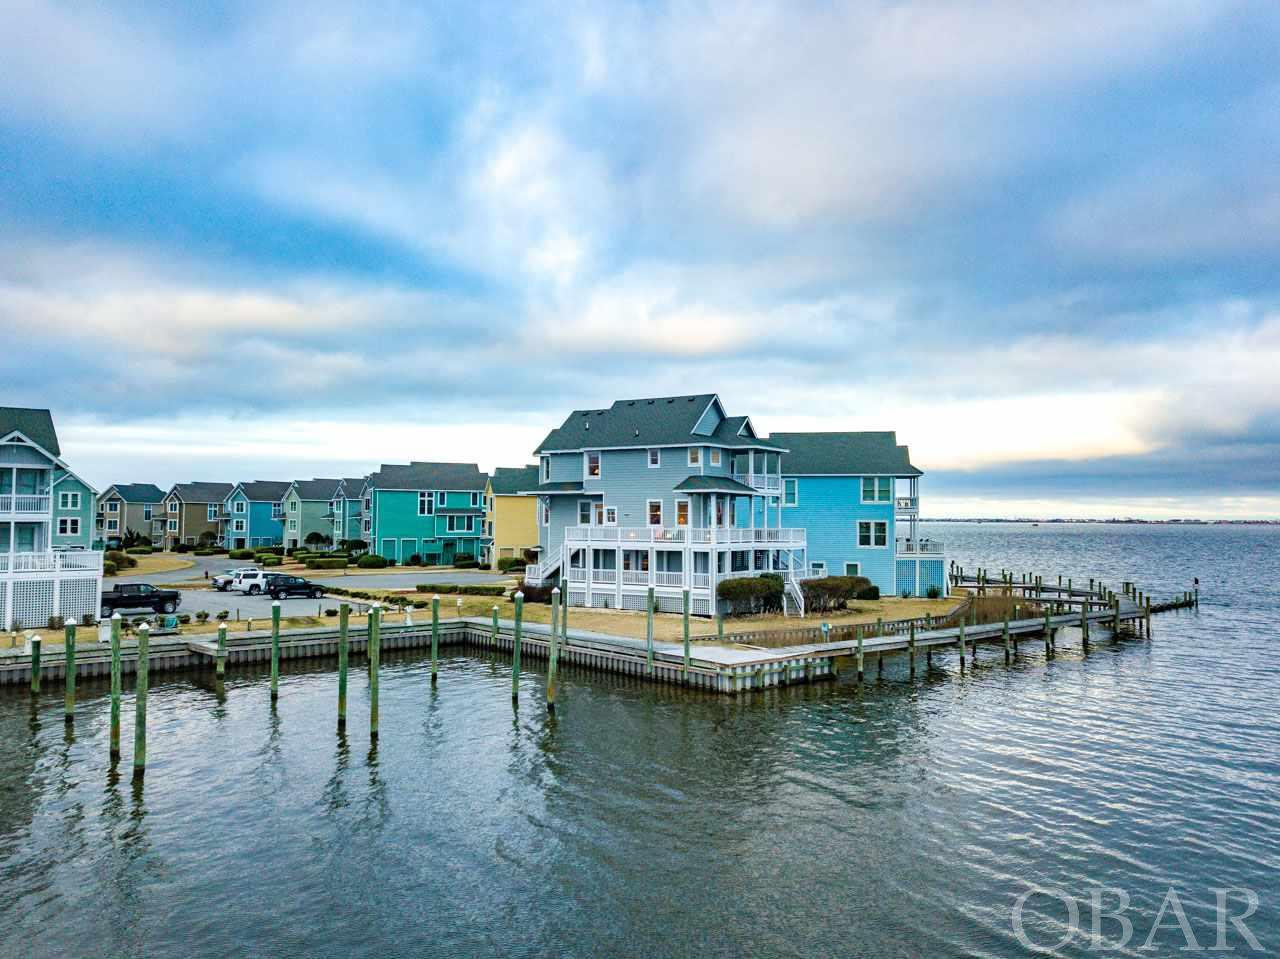 61 Sailfish Court, Manteo, NC 27954, 5 Bedrooms Bedrooms, ,5 BathroomsBathrooms,Residential,For sale,Sailfish Court,104118